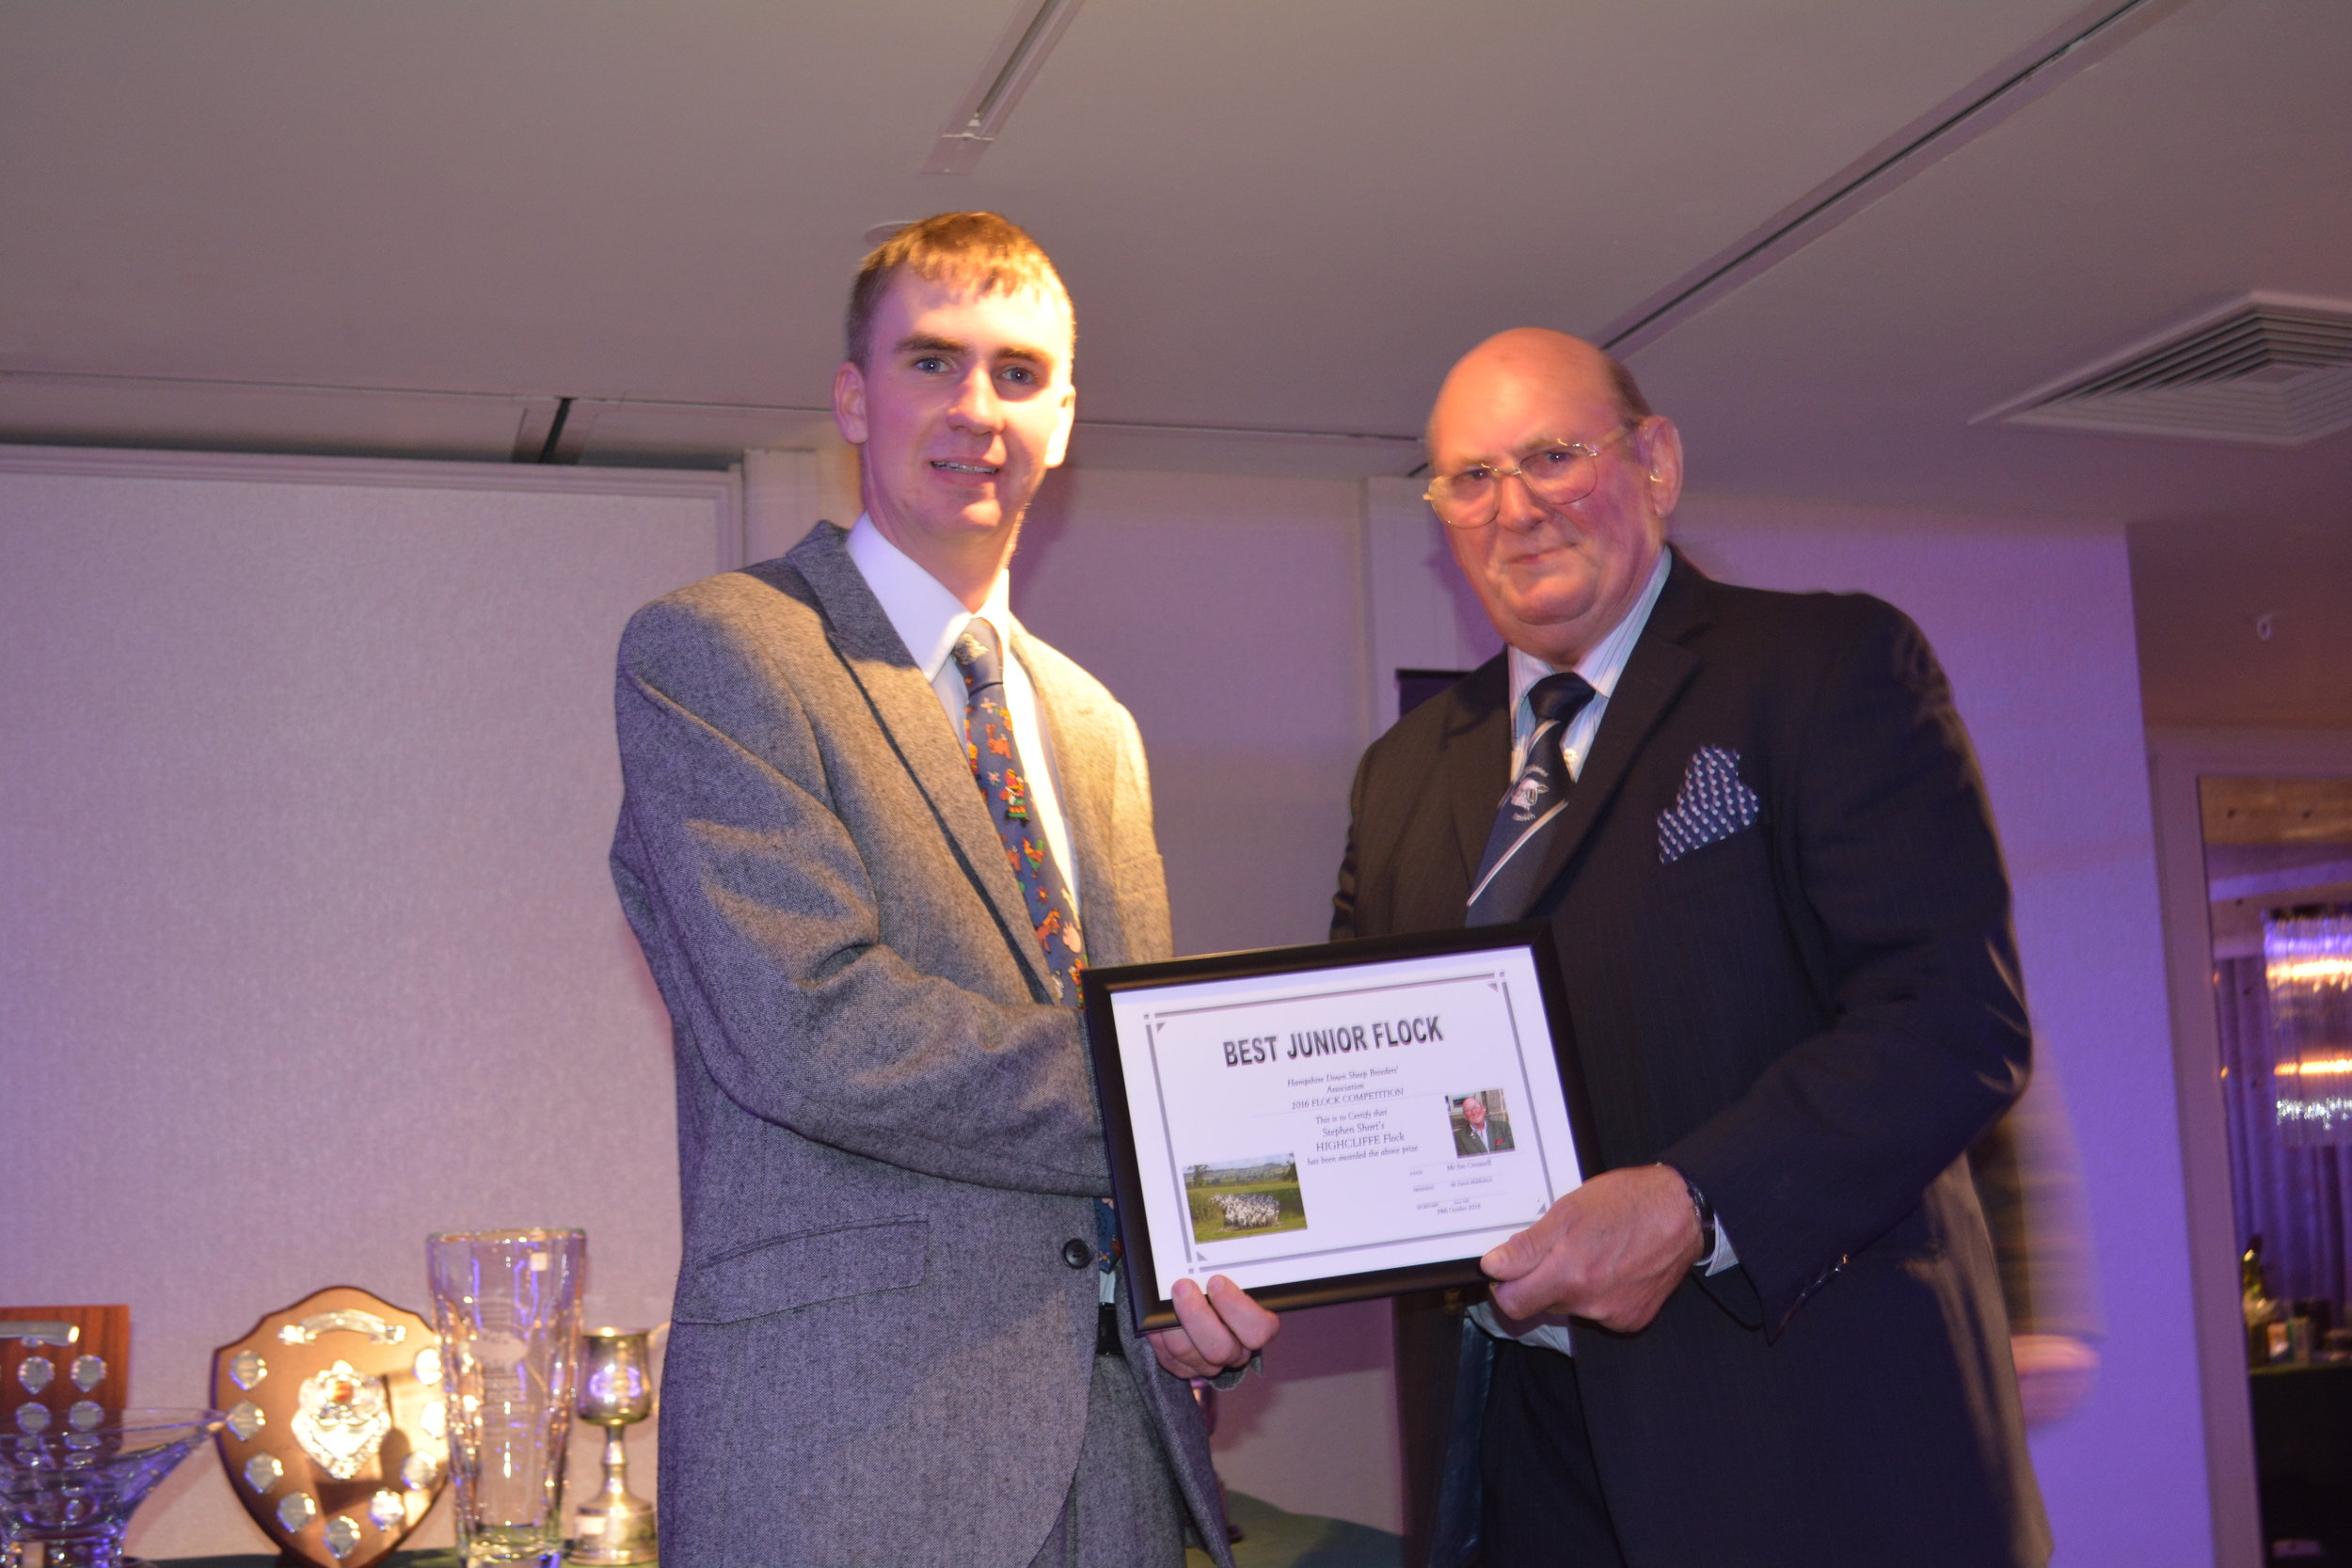 Stephen Short wins the Best Junior prize with his HIGHCLIFFE Flock